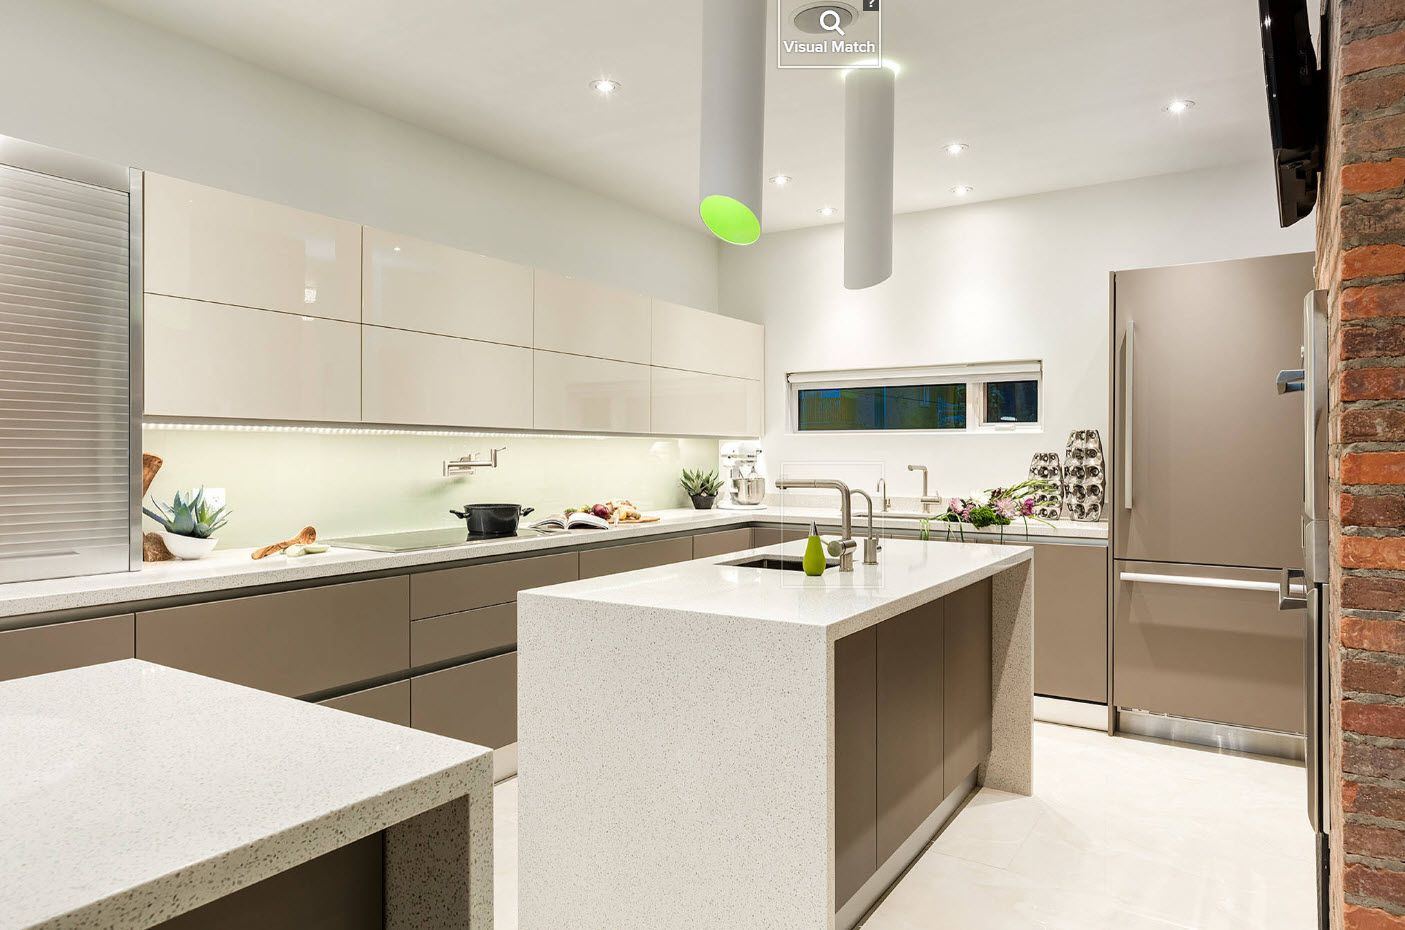 Modern hi-tech interior in the kitchen with glossy plastic surfaces